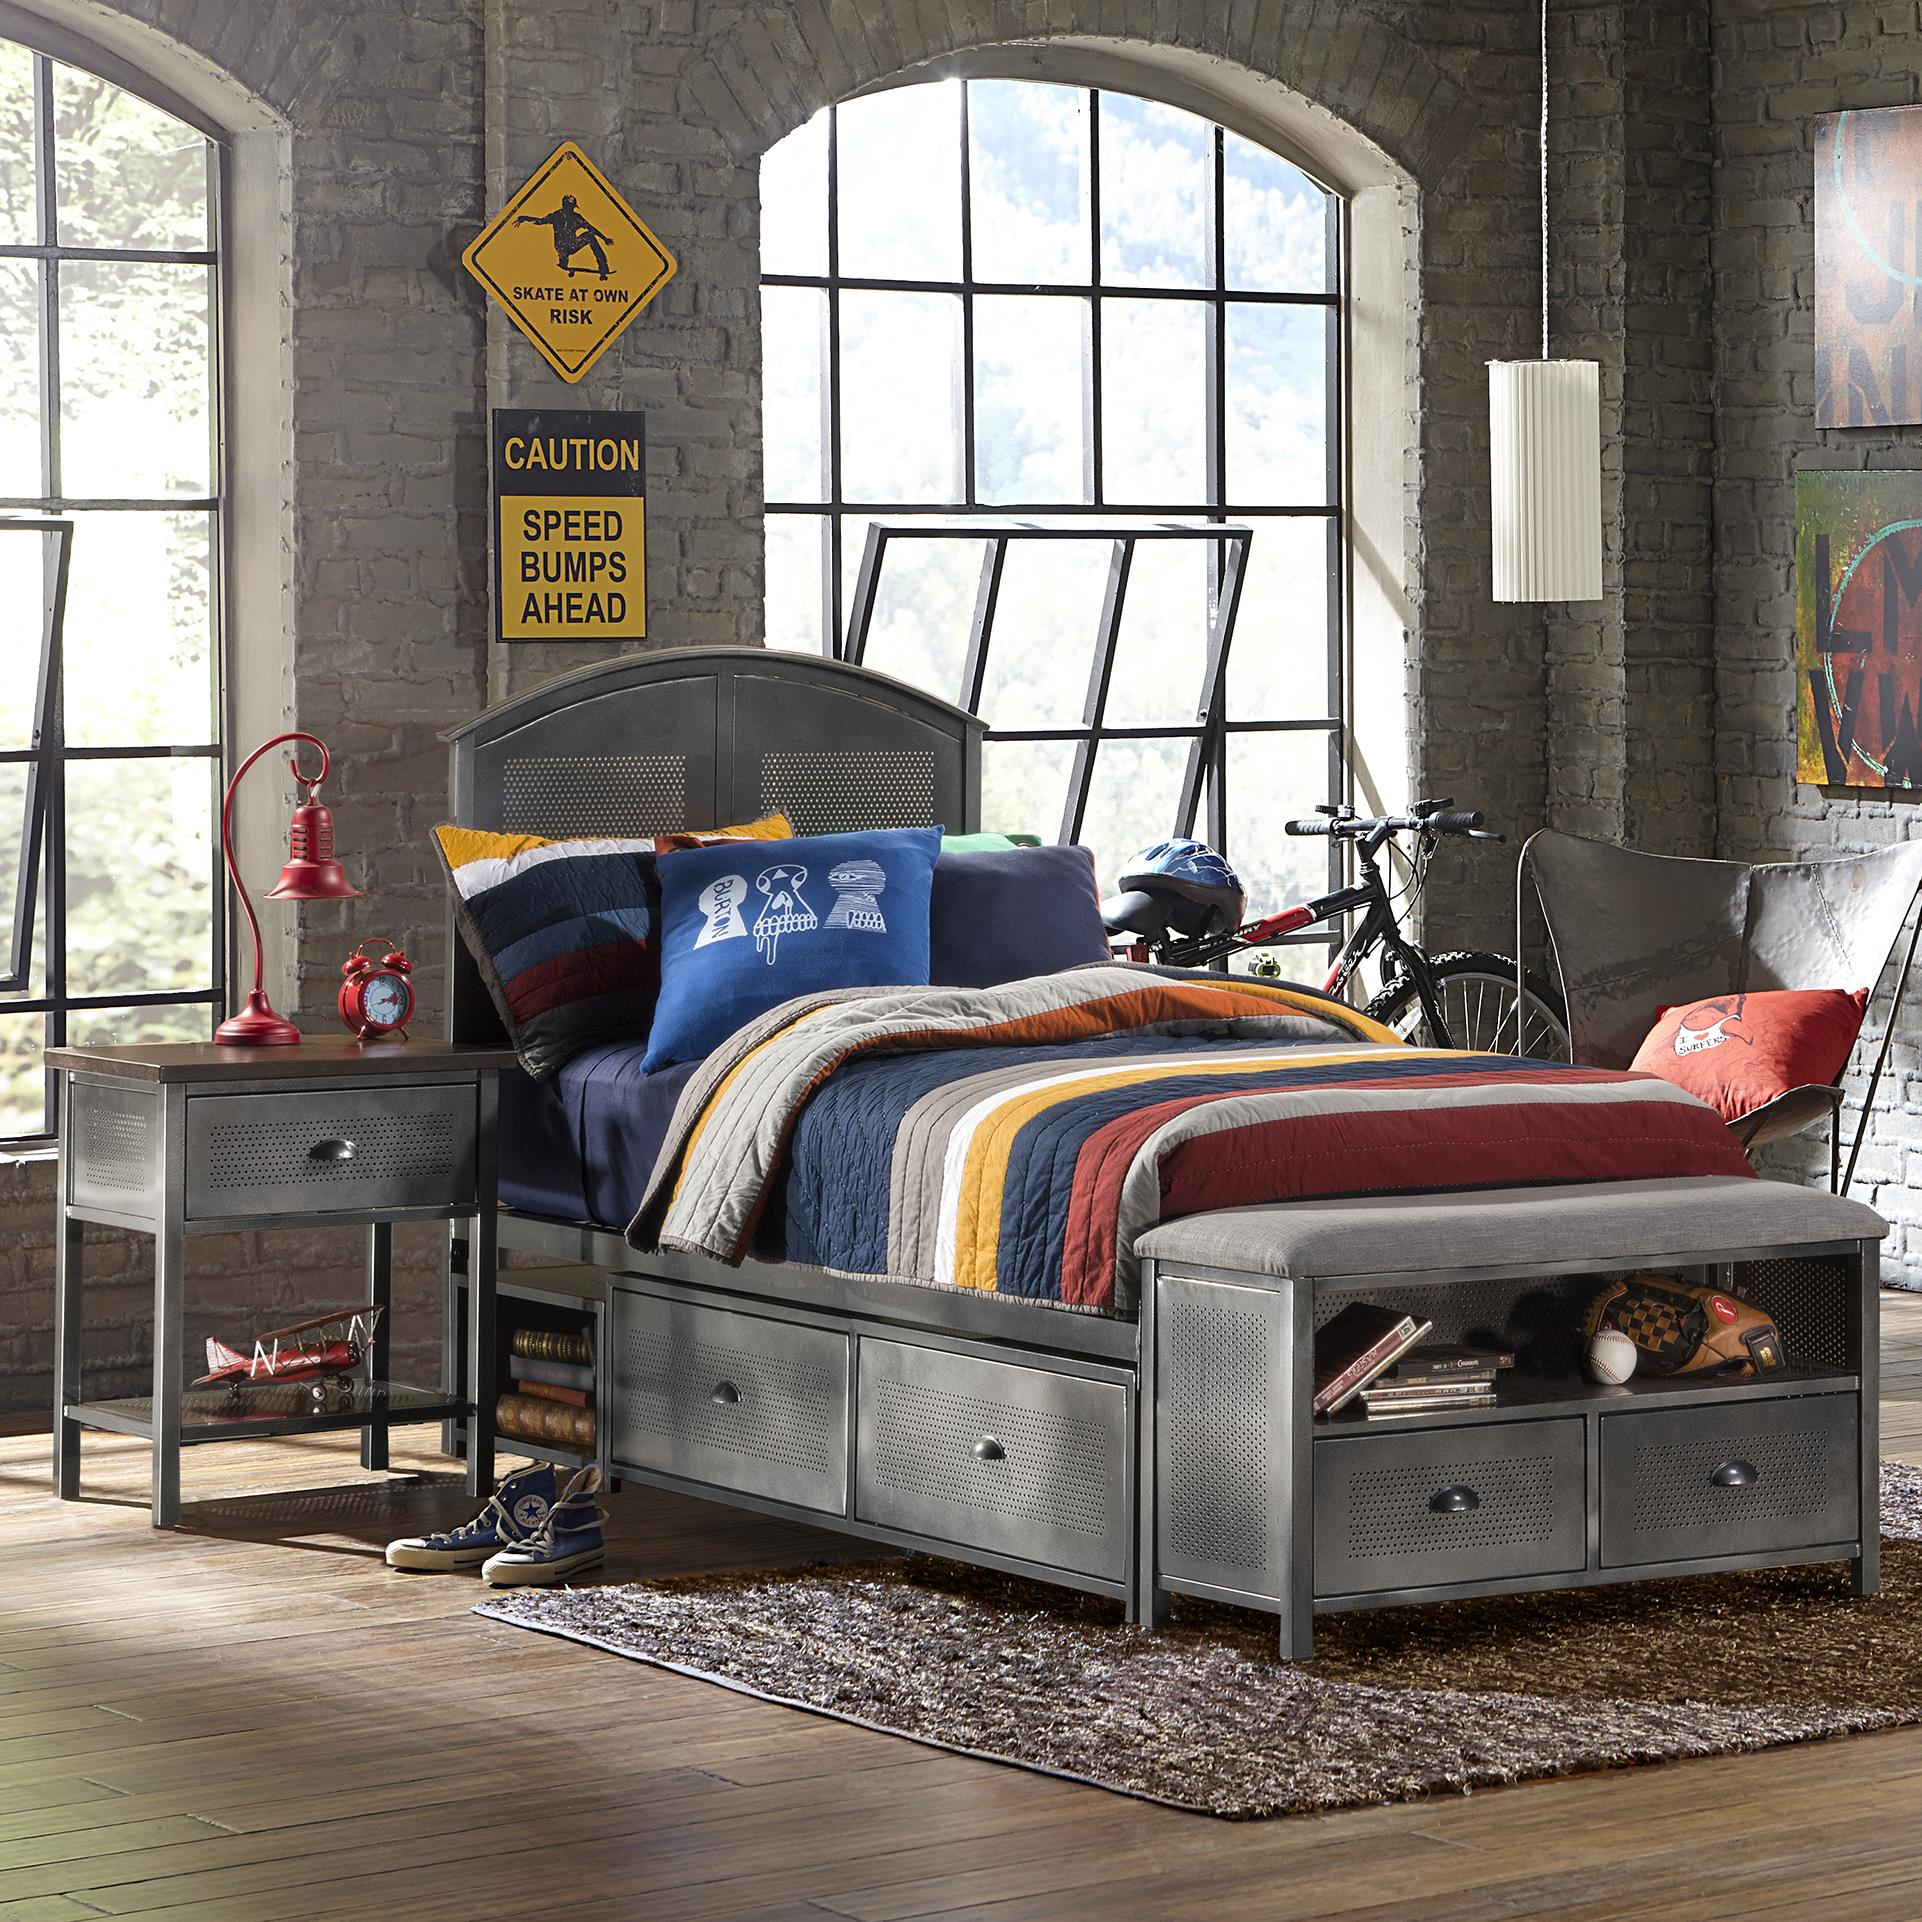 Urban Quarters Storage Bed Set with Footboard Bench by Hillsdale at Stoney Creek Furniture